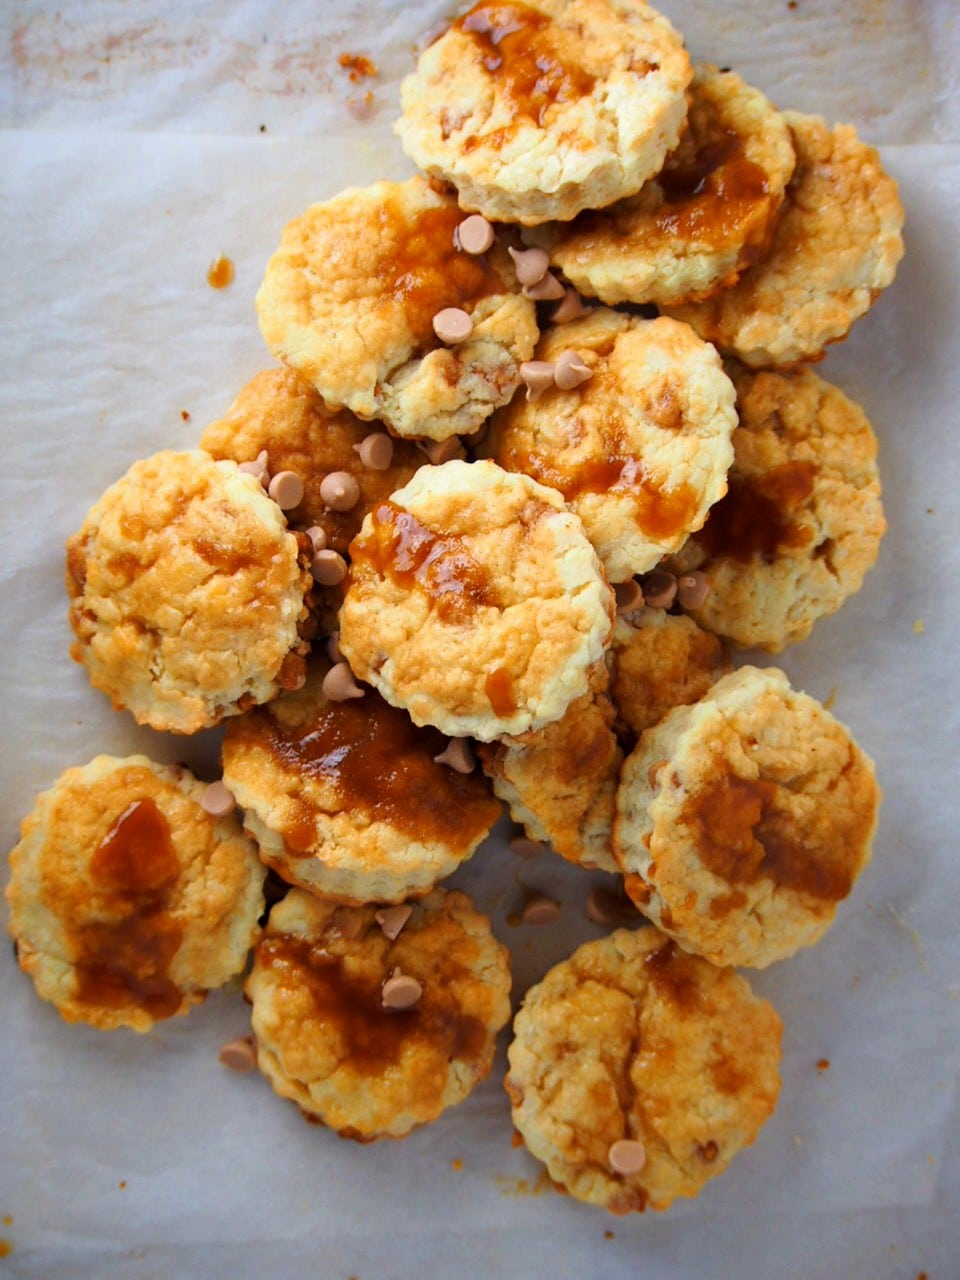 Salted caramel scones piled on a parchment paper.